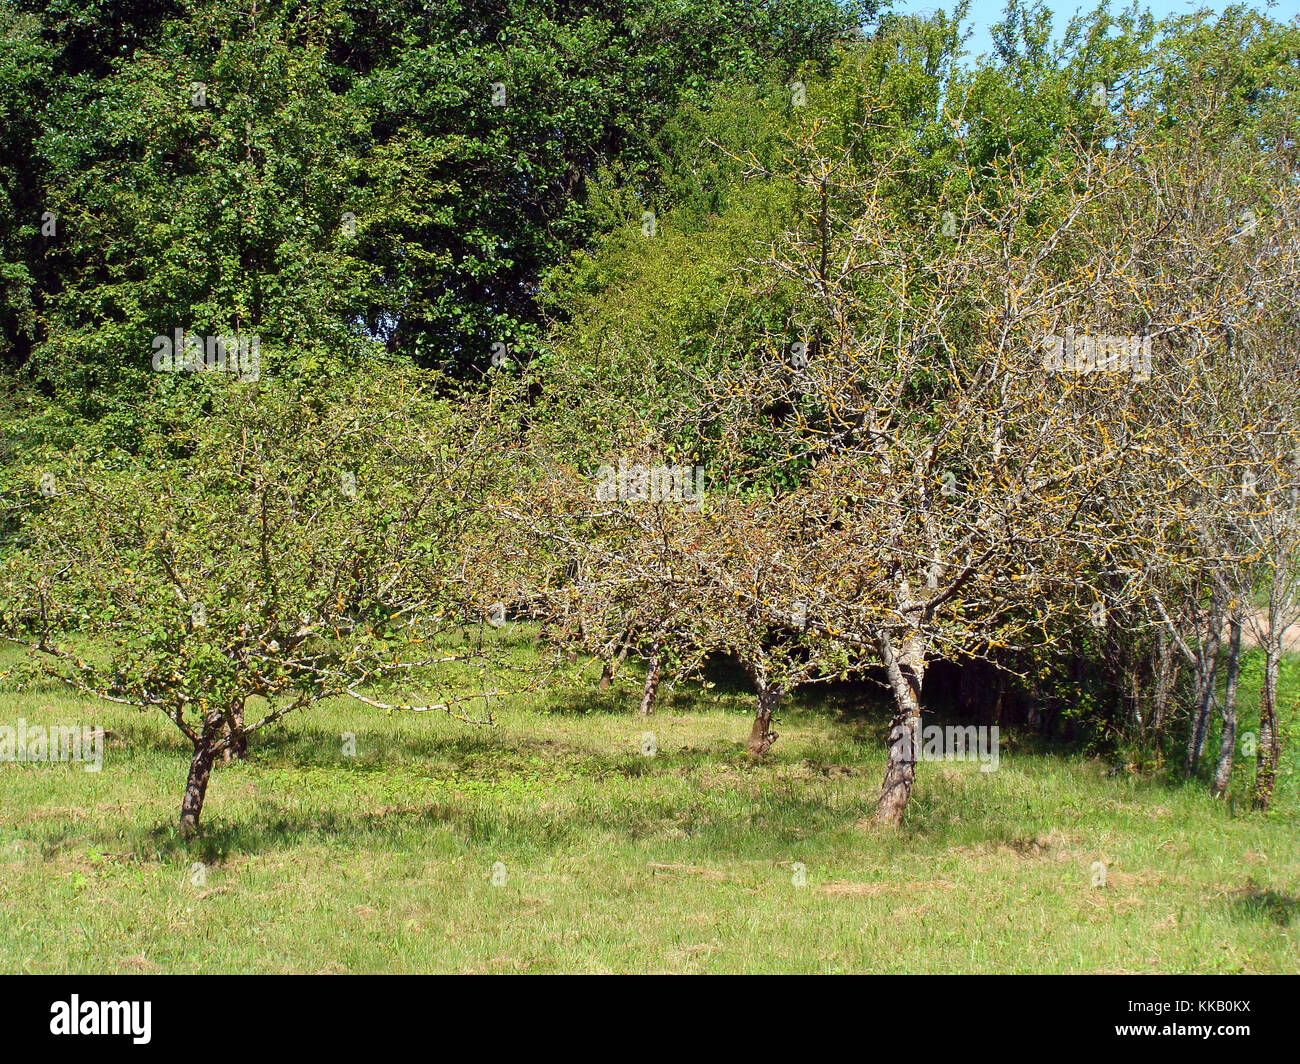 Apple tree lost all leaves from drought stress caused by fire blight or rodent damaged roots - Stock Image